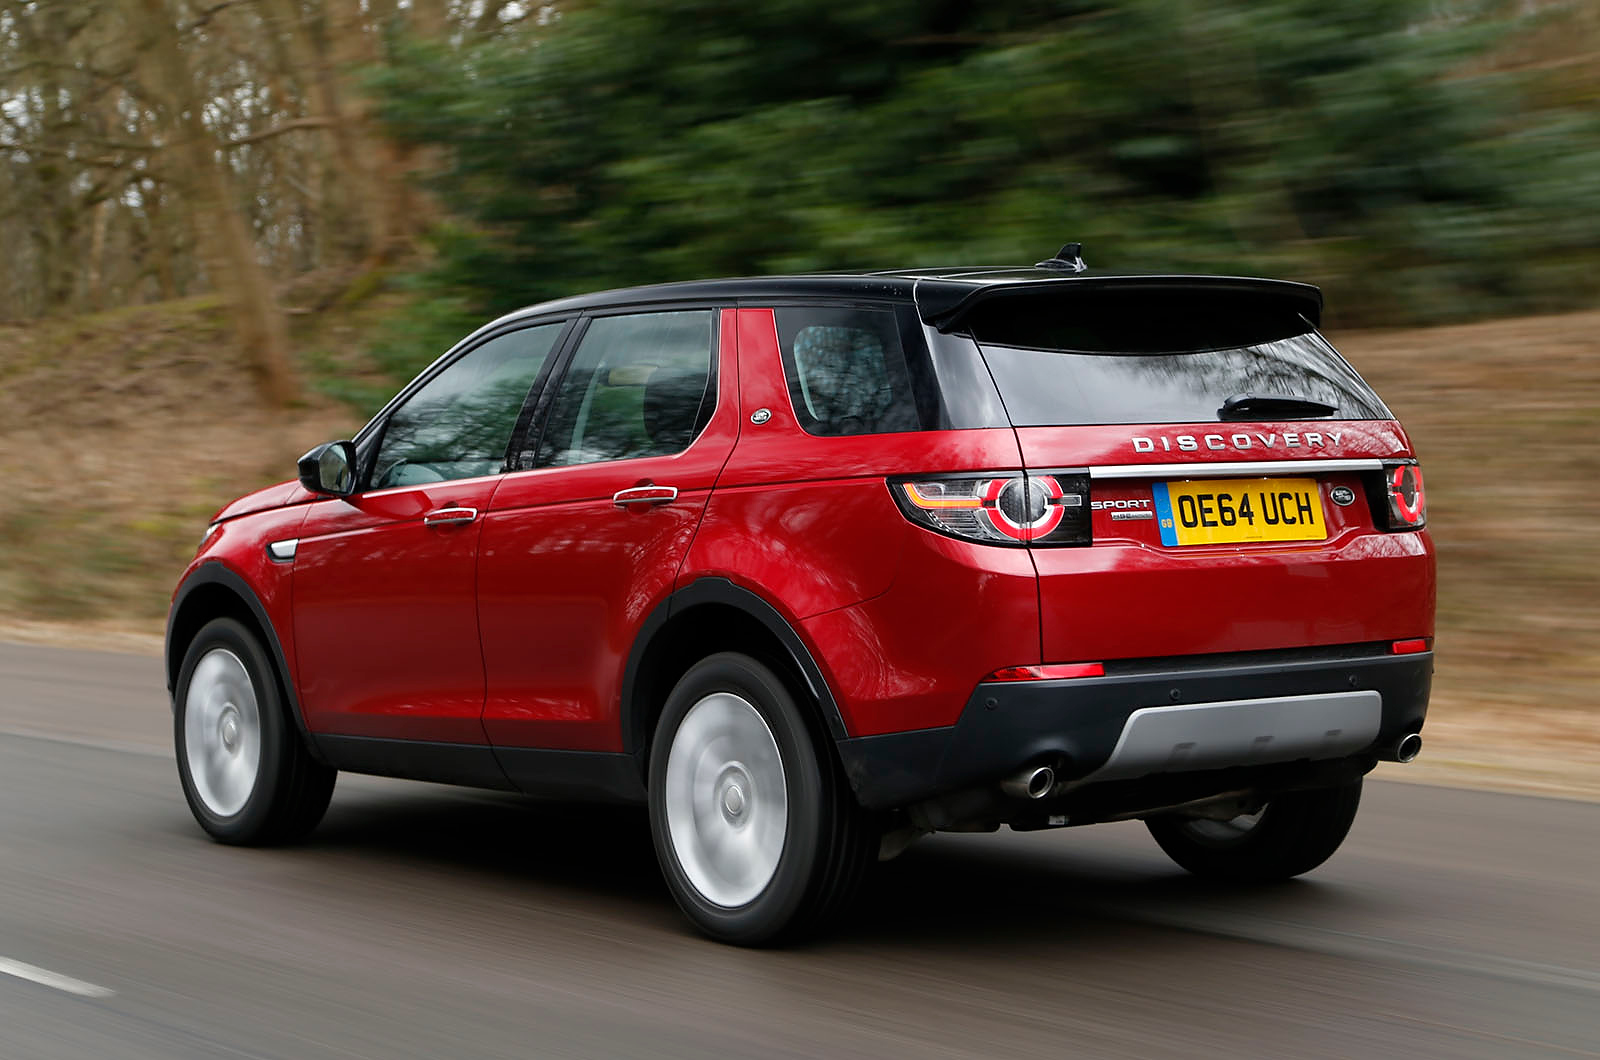 Range Rover Discovery 5 Black Pack | Riviera Styling